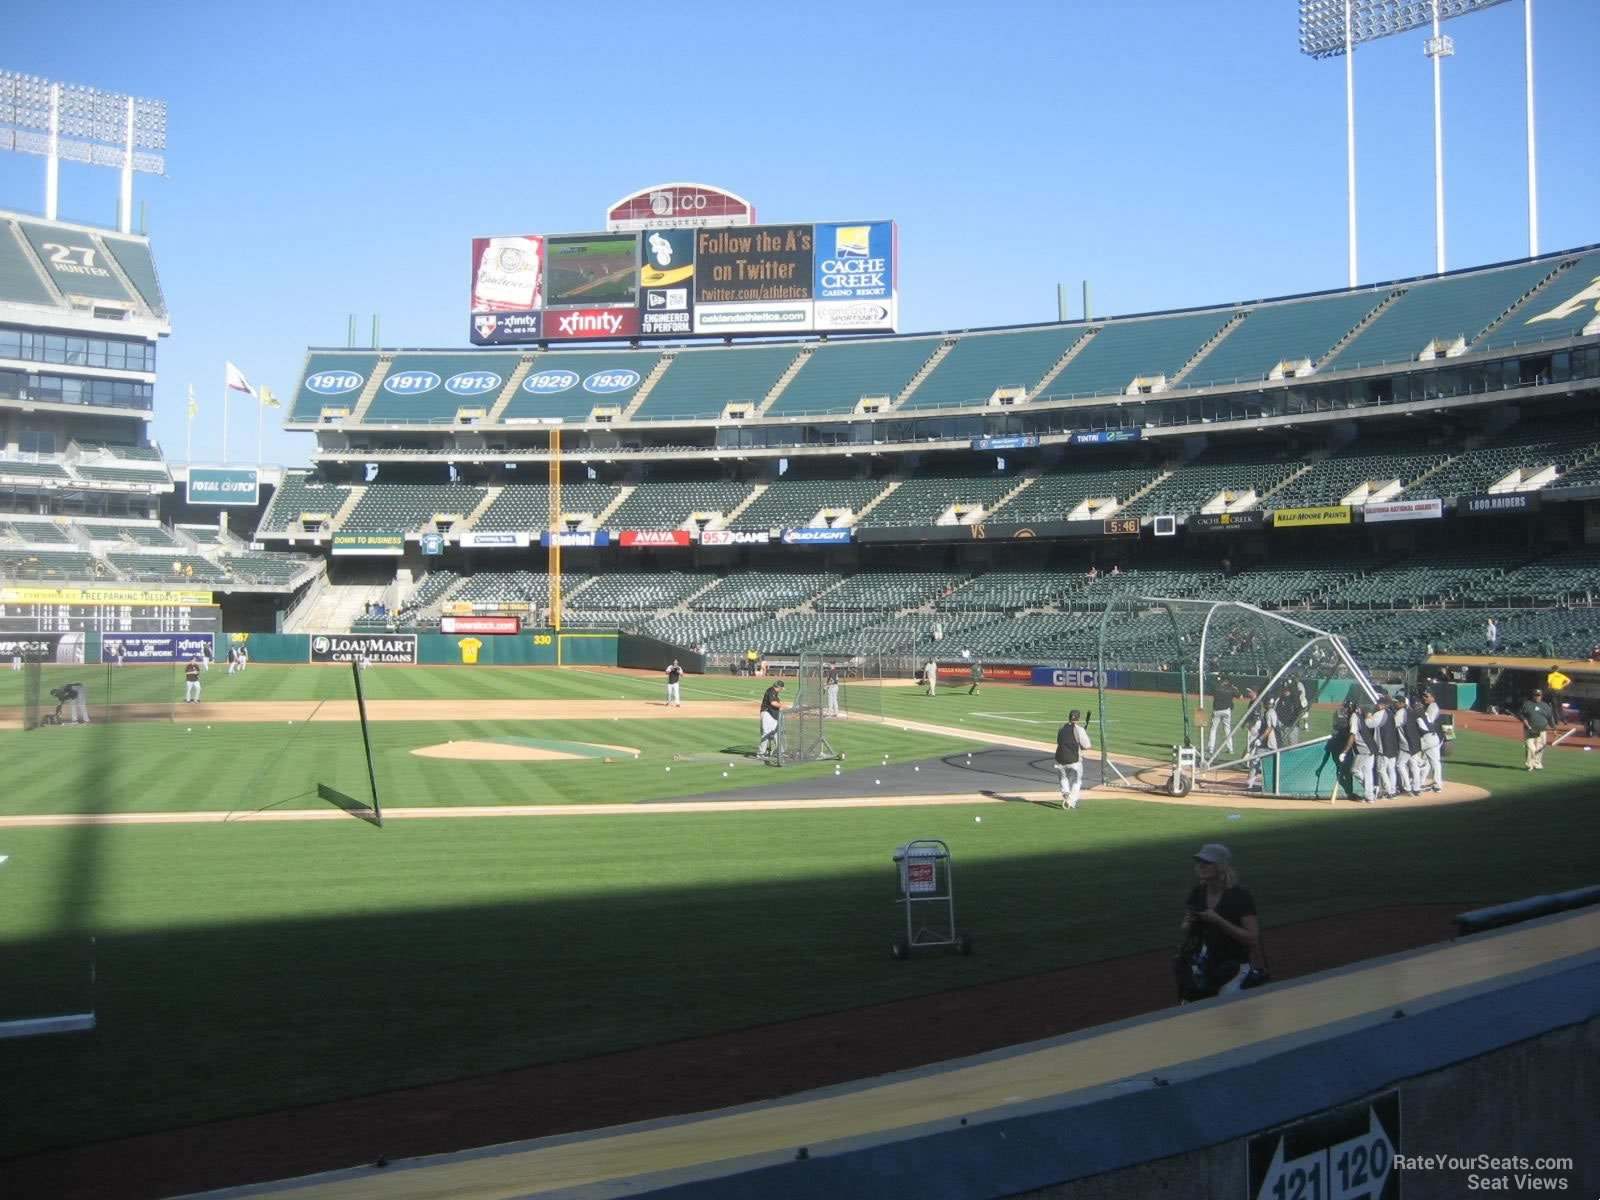 View from Section 121 Row 8 at Oakland Coliseum